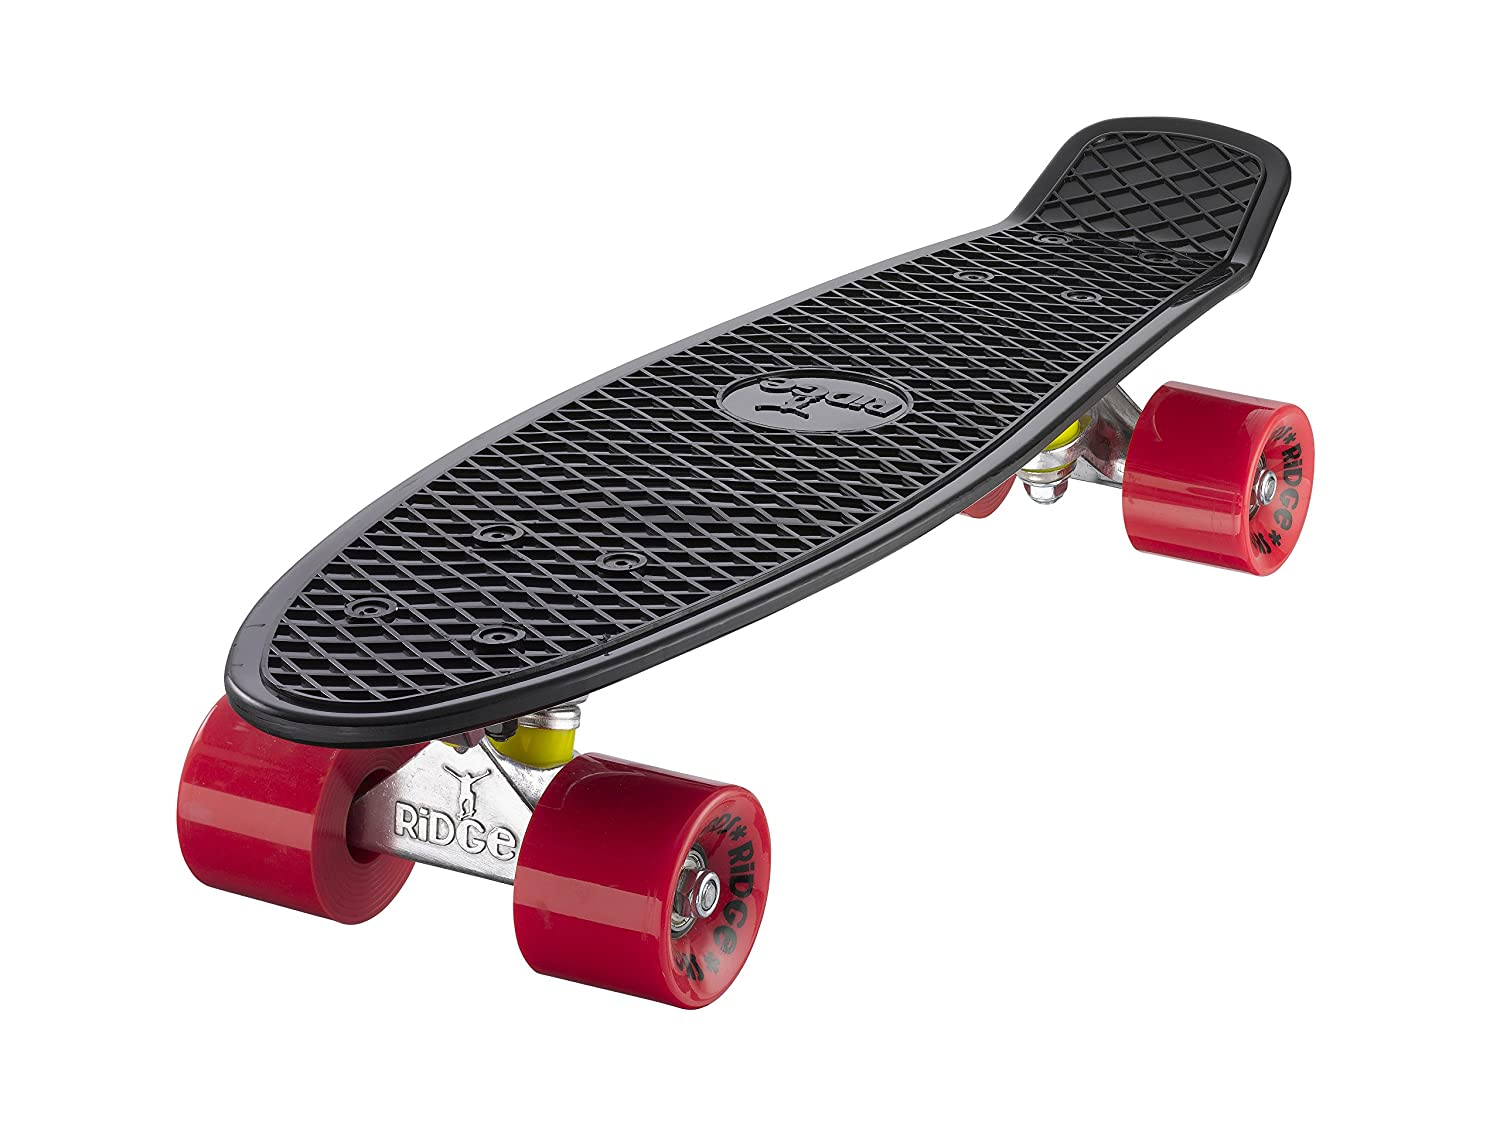 Ridge Retro Skateboard color negro y rojo cm